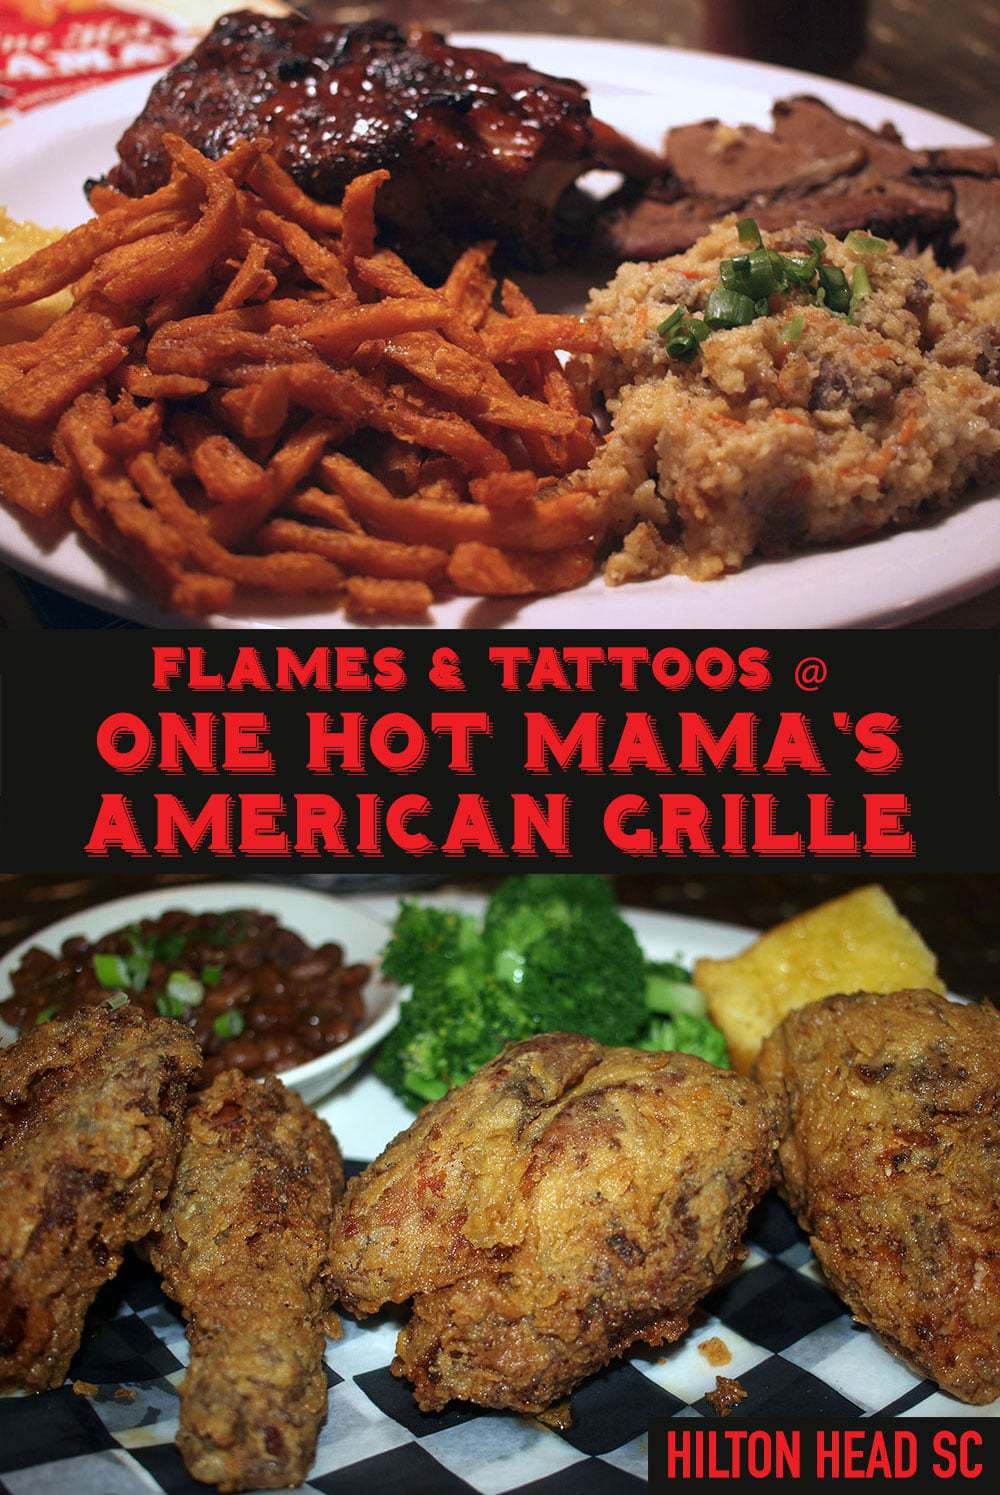 It's Flames and Tattoos at One Hot Mama's American Grille in Hilton Head Island South Carolina